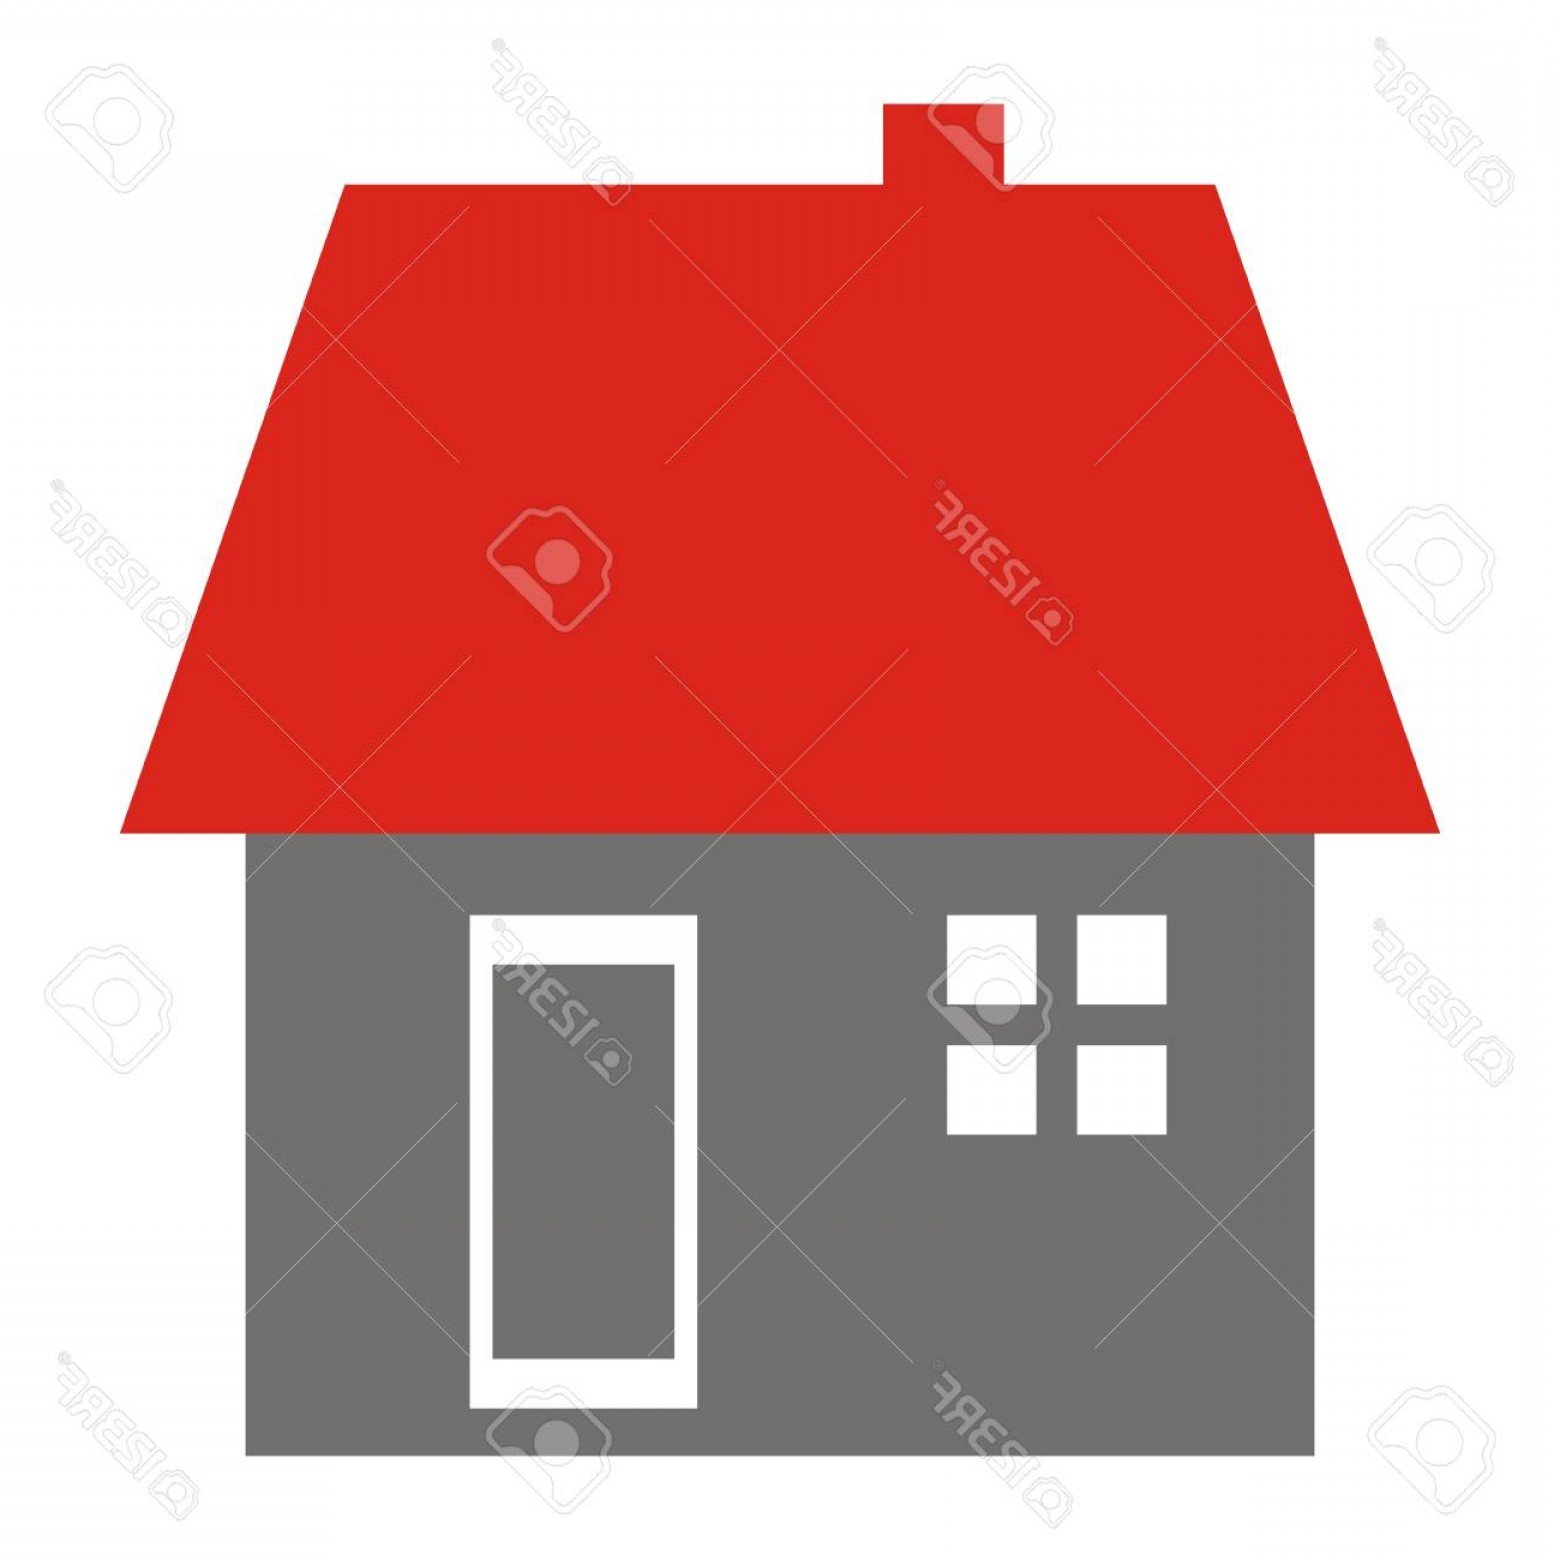 Vector Smokestack: Photostock Vector House With Window Door Roof And Smokestack Vector Icon Isolated Object Red Roof And Gray Facade With